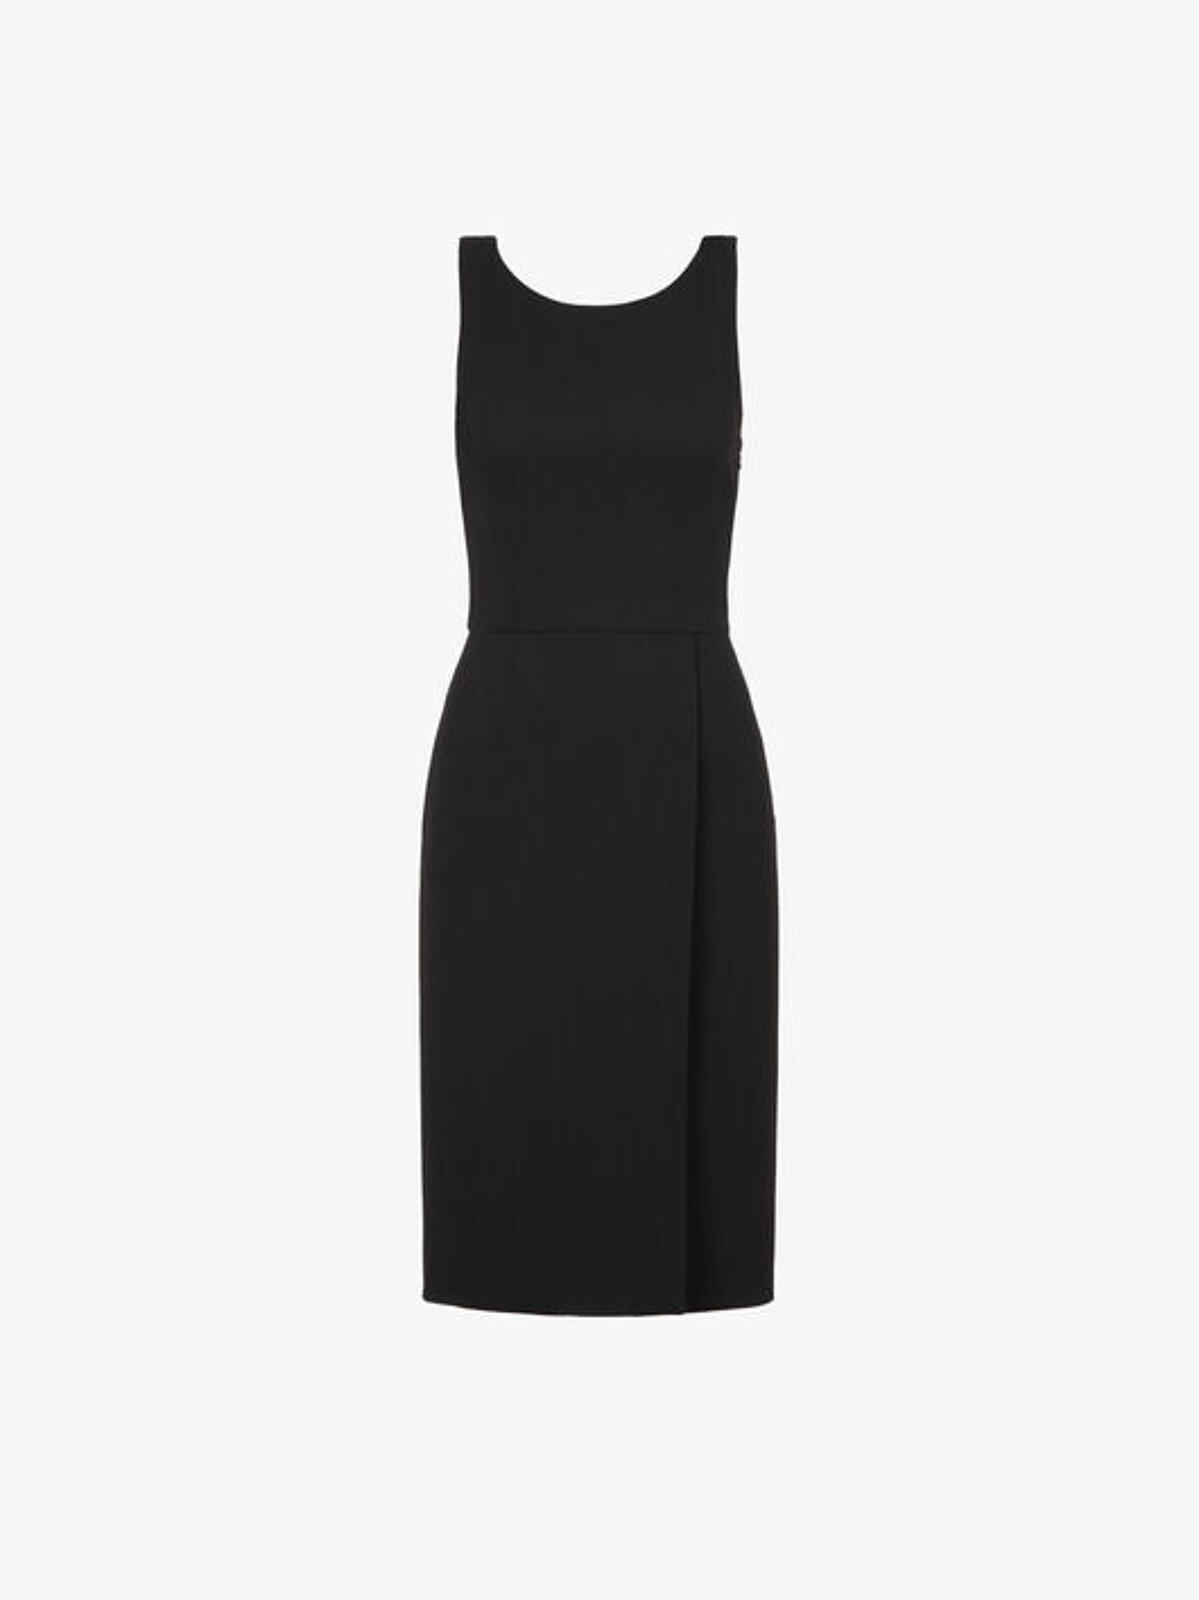 Short Dress In Wool Crêpe With Graphic Neckline - Givenchy